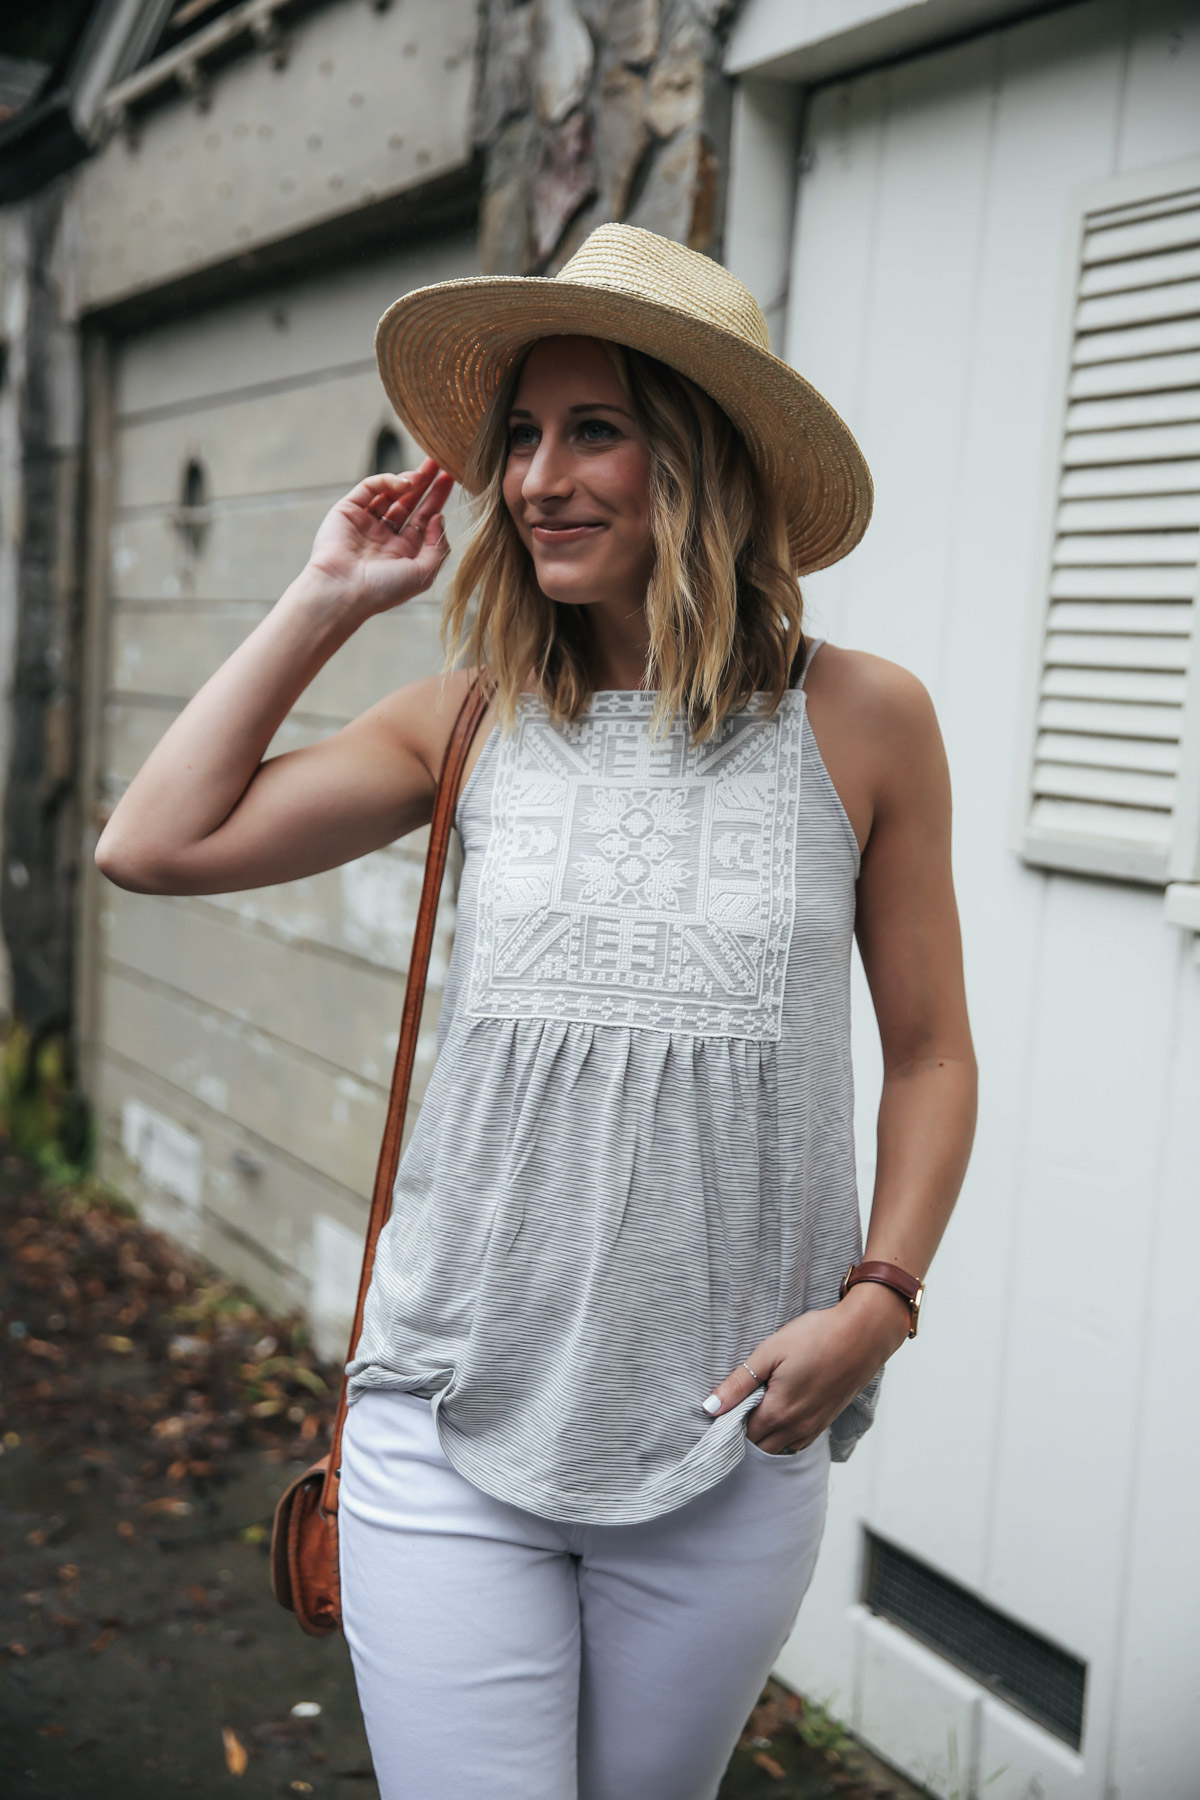 Amanda Holstein in Old Navy top